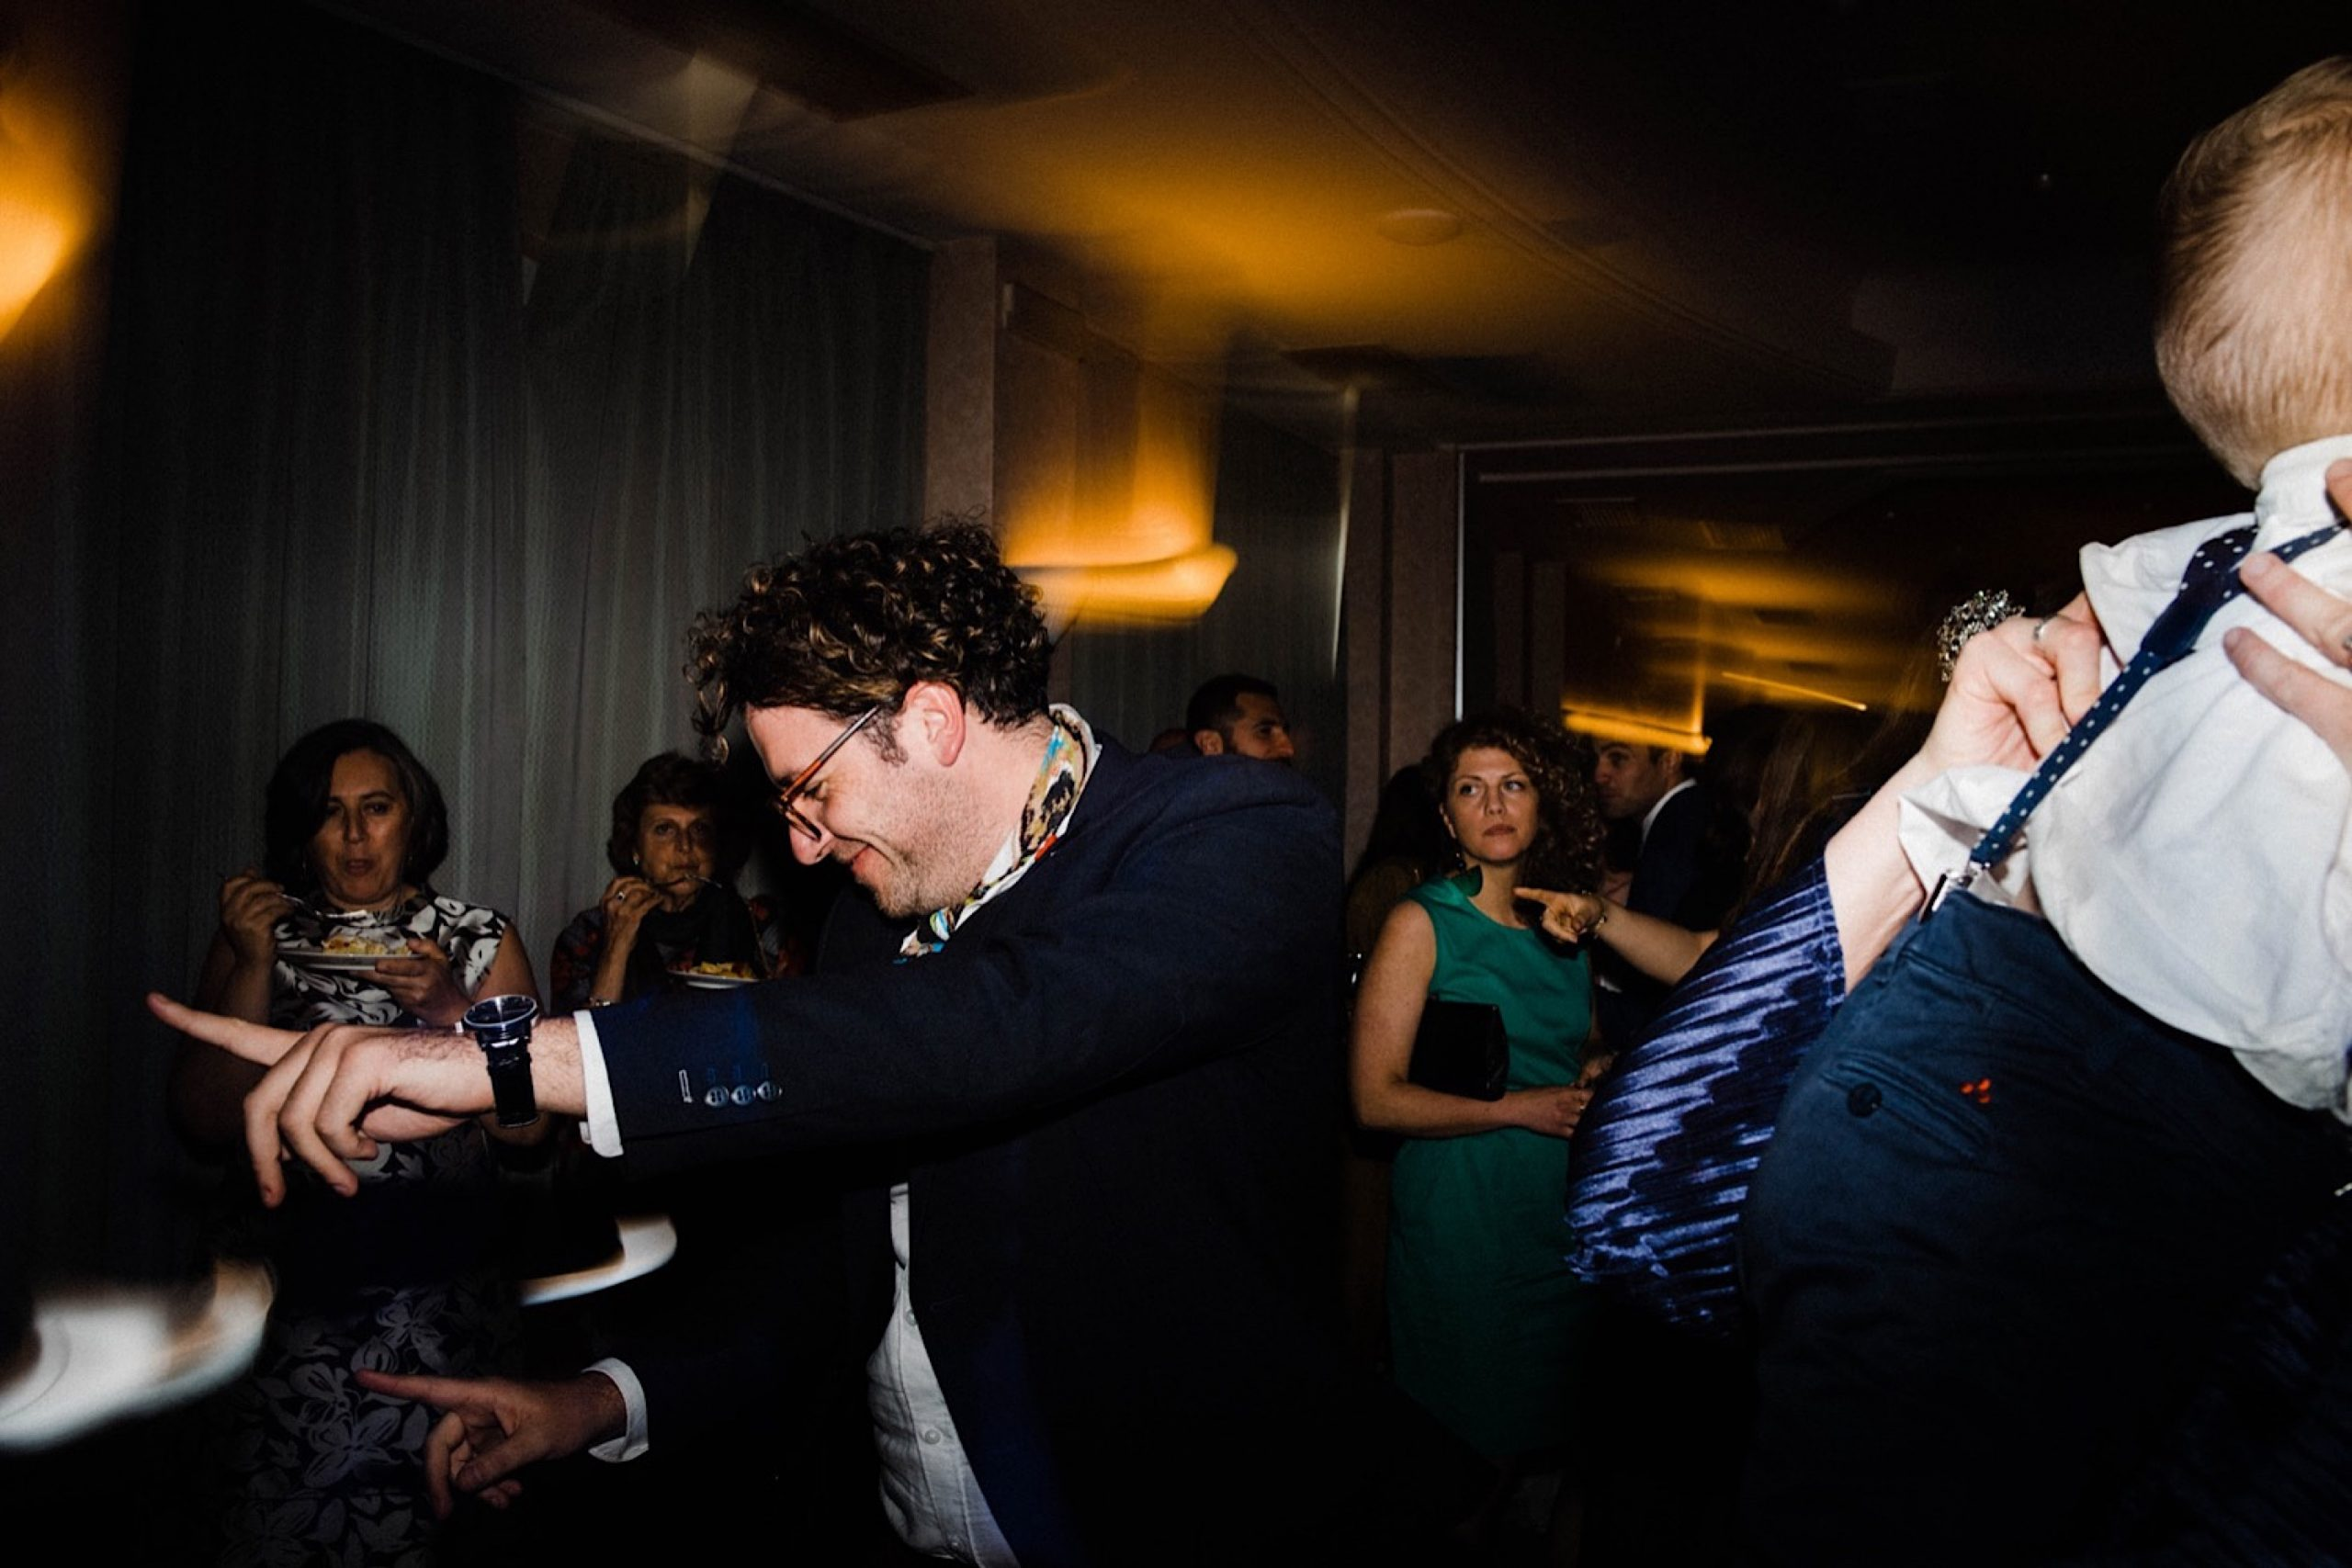 Documentary Wedding Photography of guests dancing at a Sestri Levante Wedding.